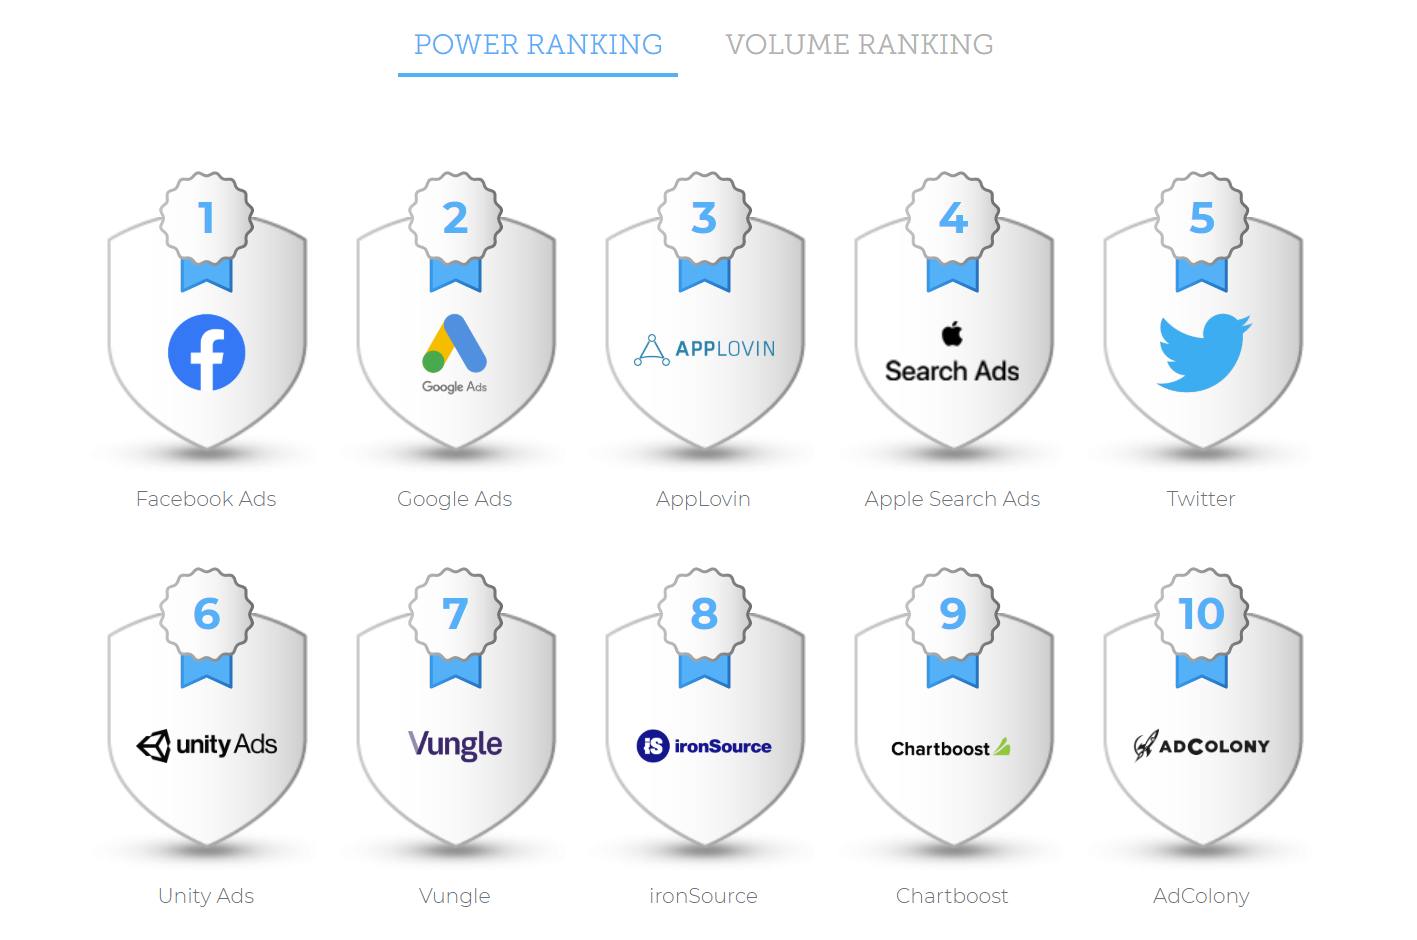 AppsFlyer Performance Index Power Ranking